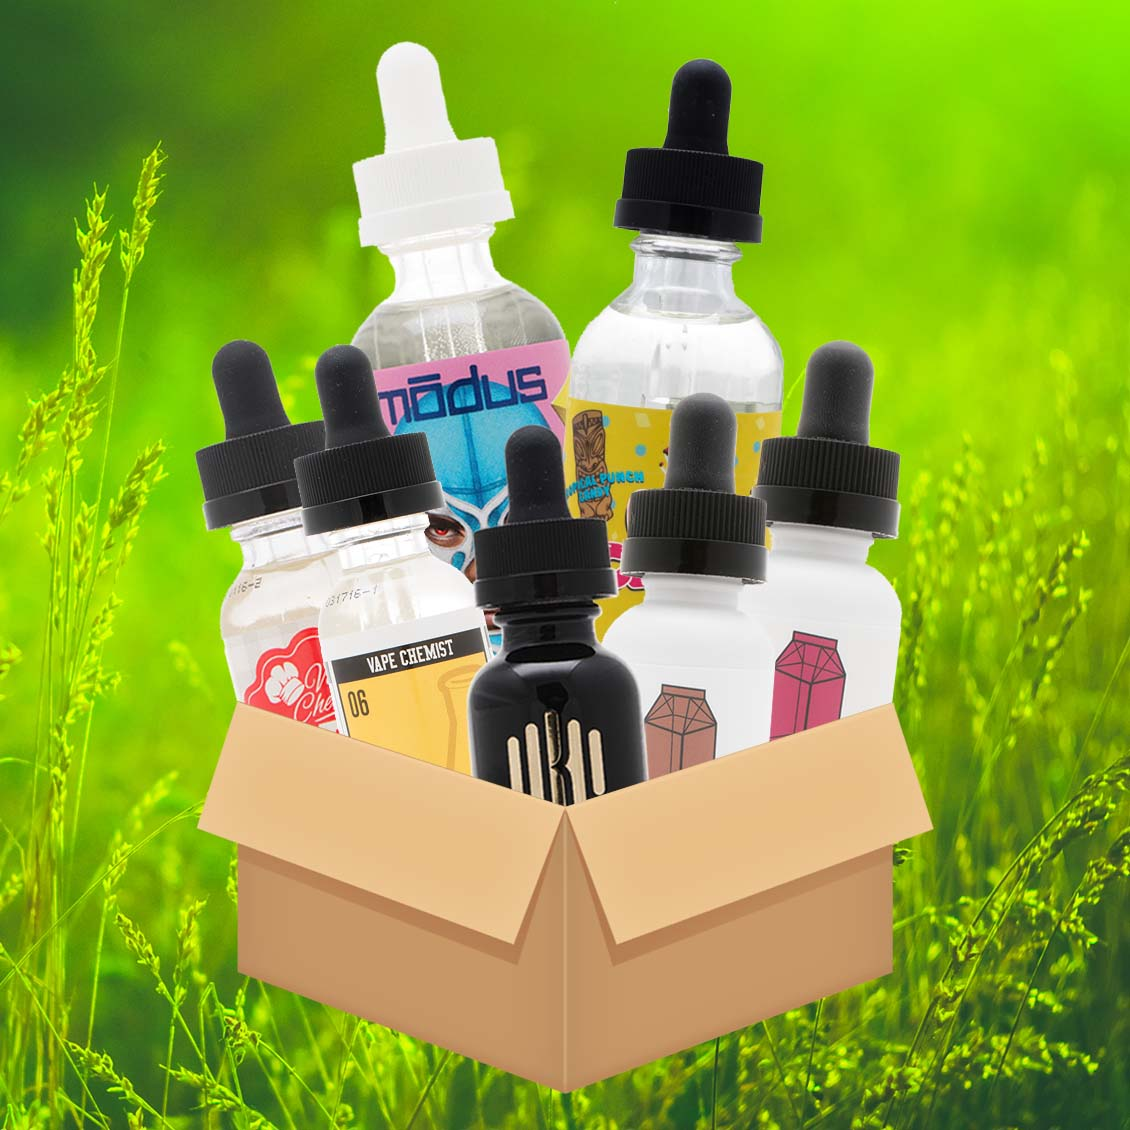 Premium Variety Bundle w/ Modus, Pop Clouds, Milkman and More - 300mL! Photo